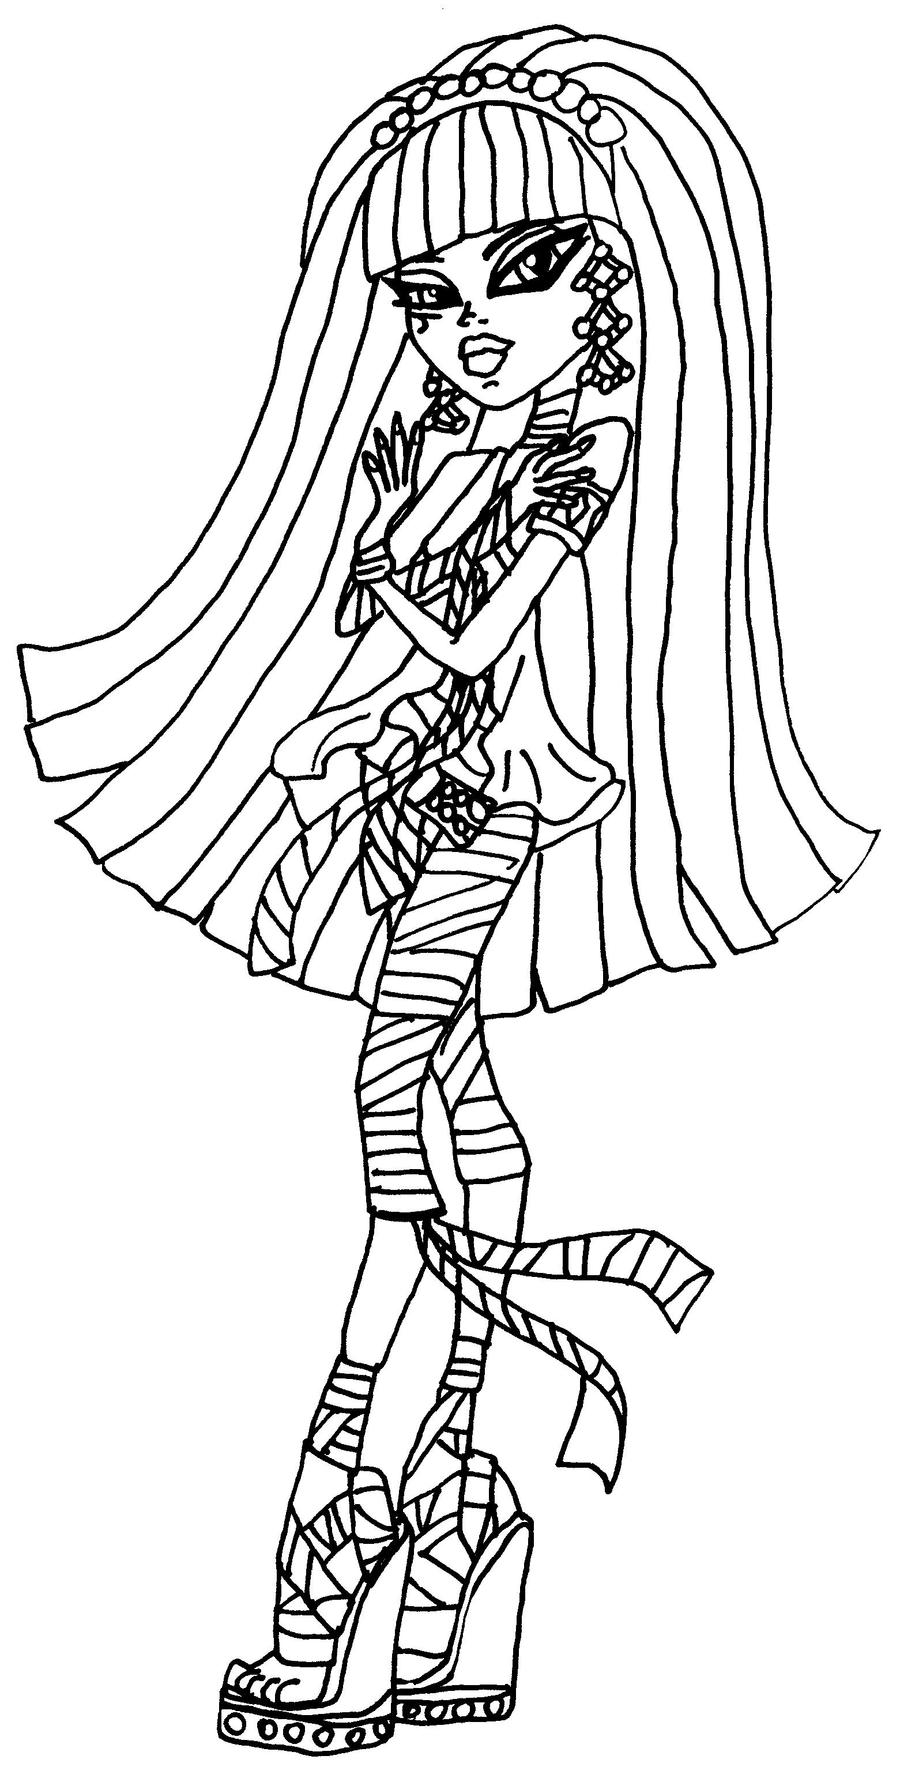 cleo de nile coloring pages - photo#11